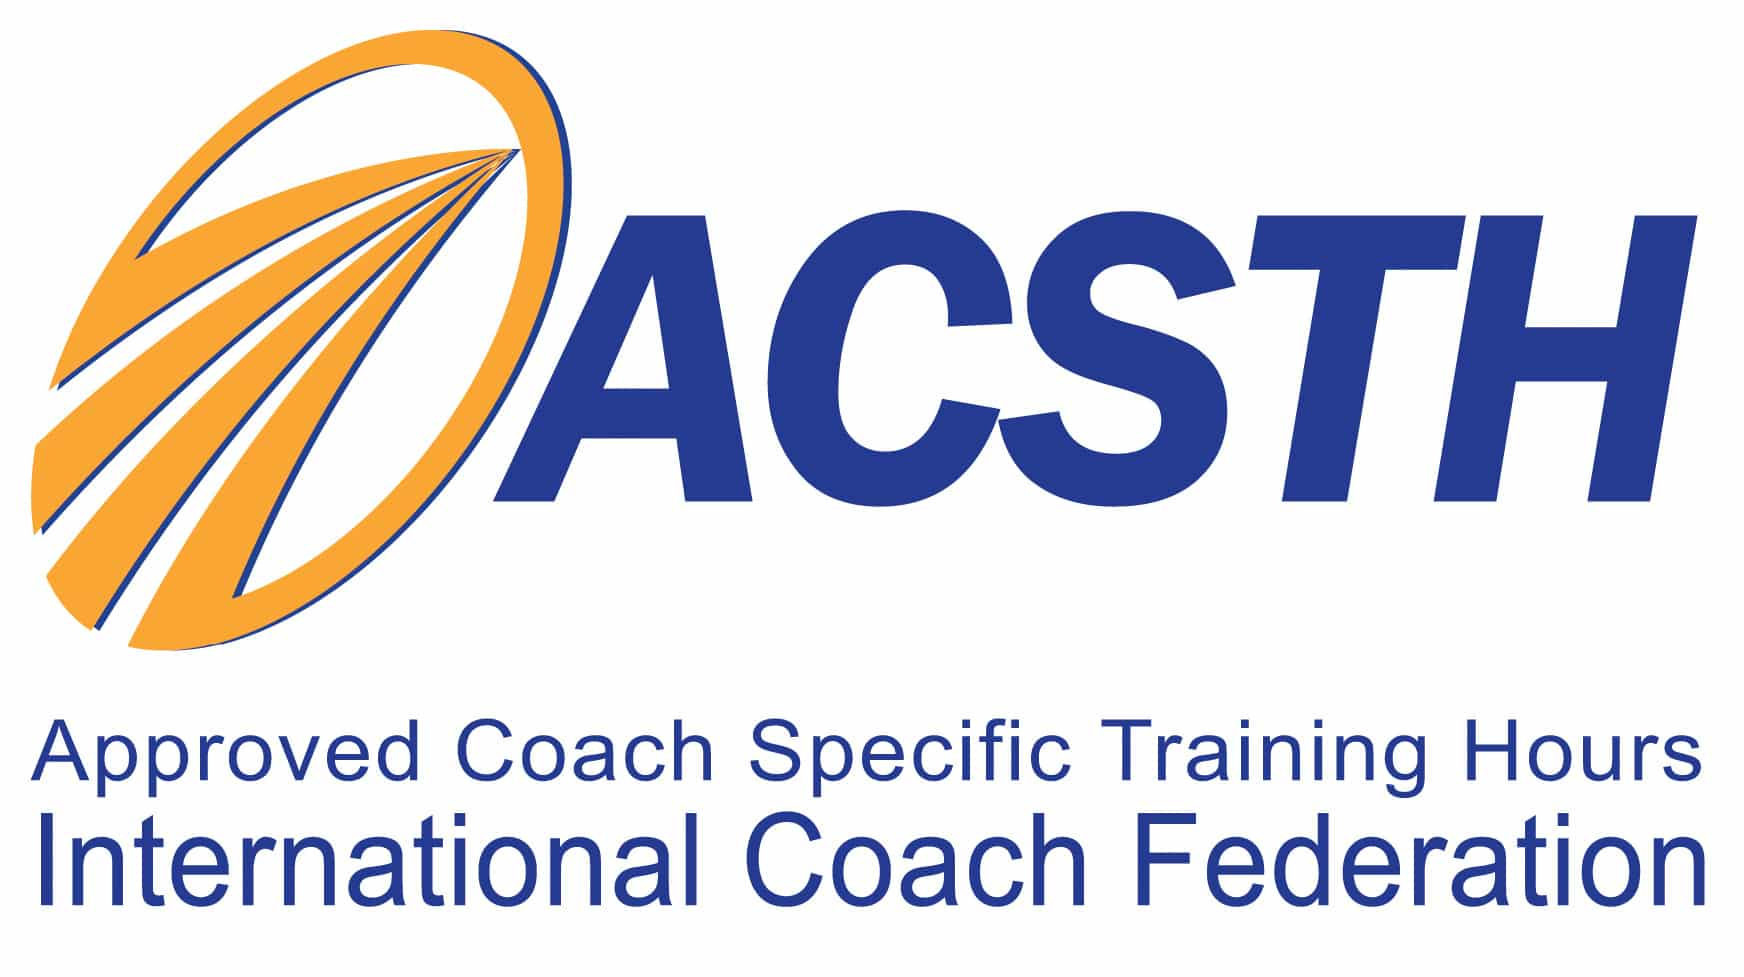 Approved Coach Specific Training Hours ICF